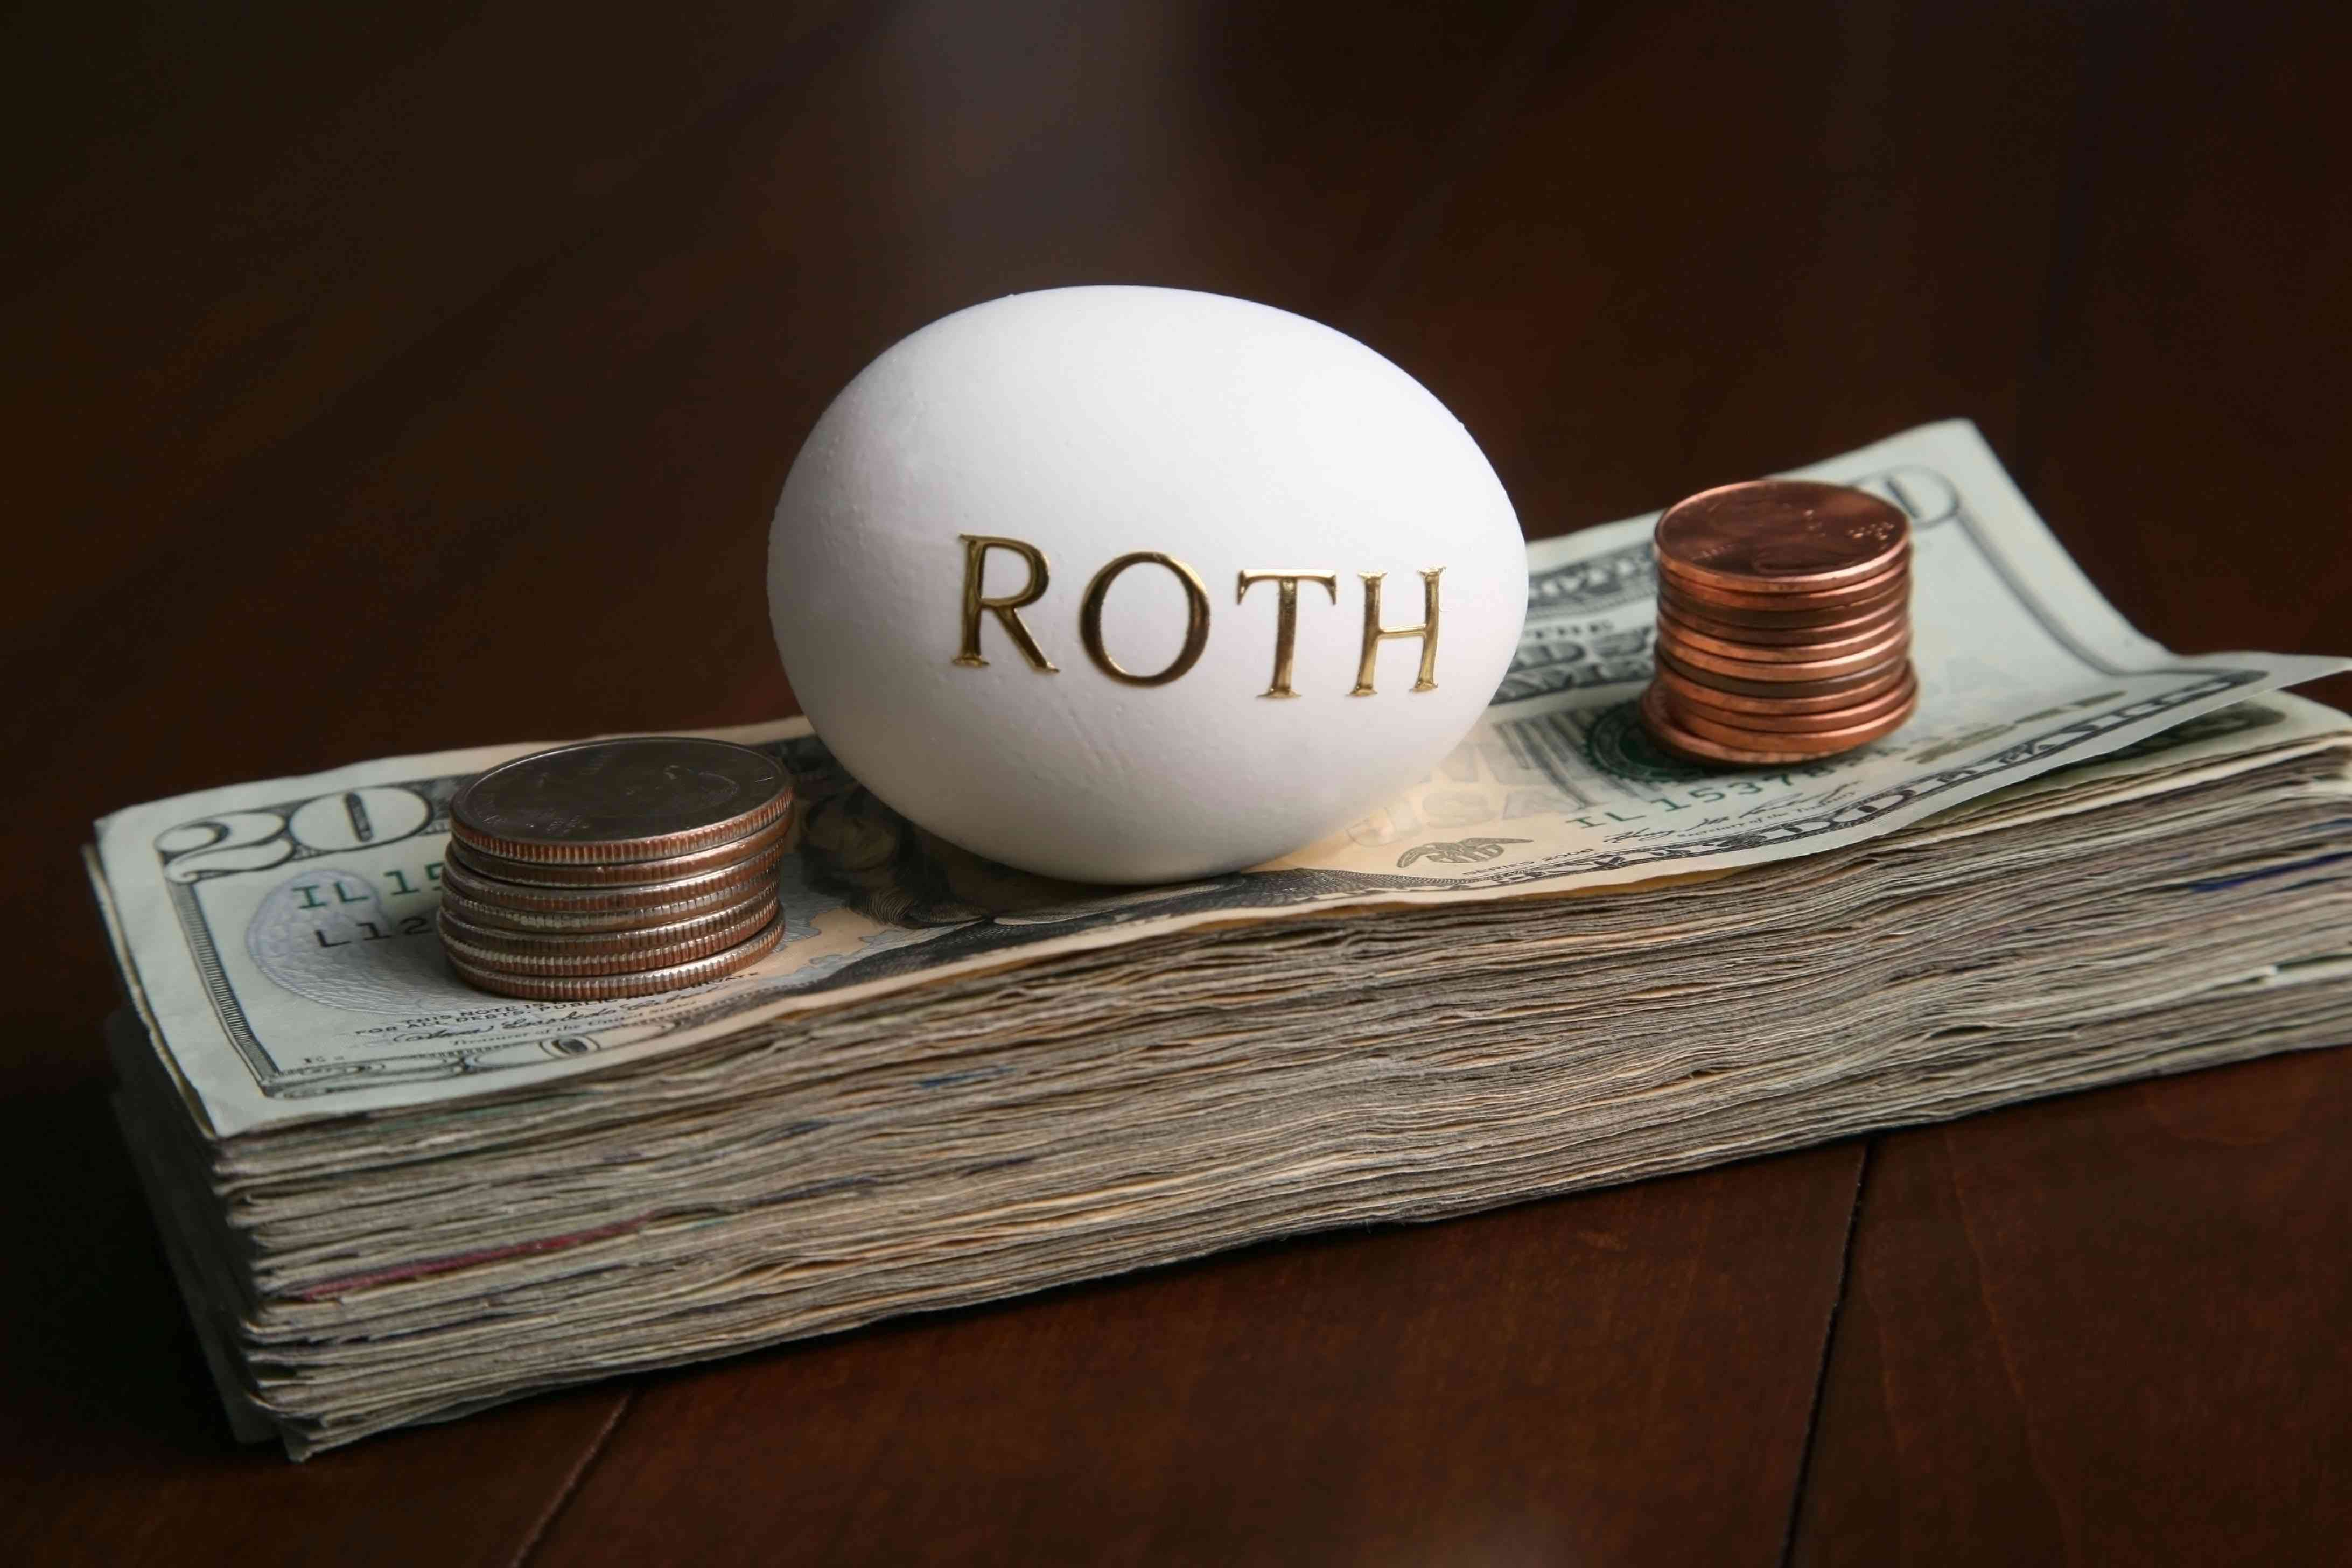 Egg on pile of money with Roth written on it